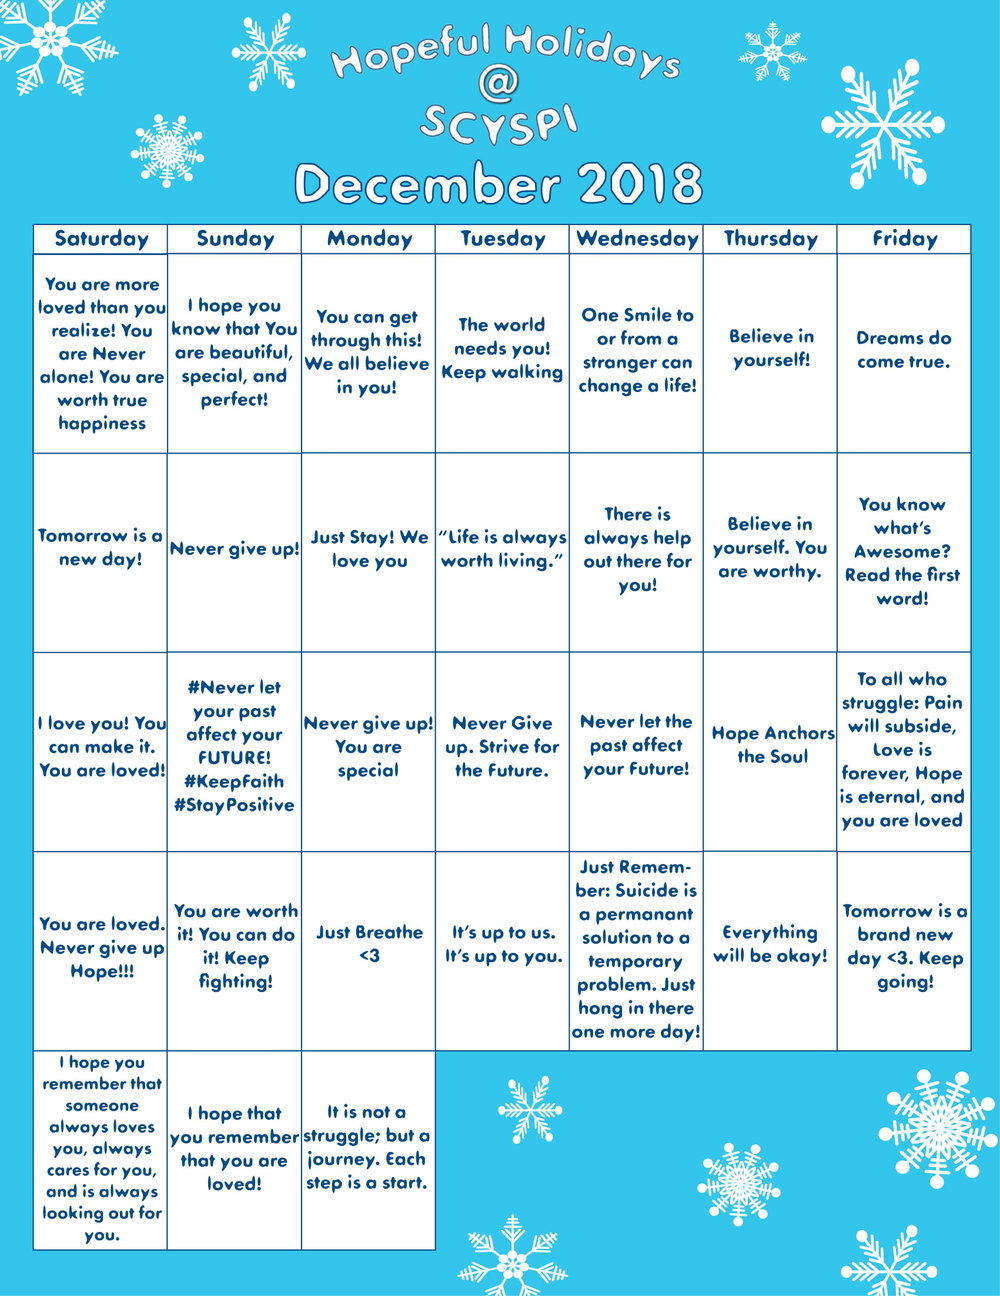 hopeful holidays calendar dec 31st (complete)-1.jpg